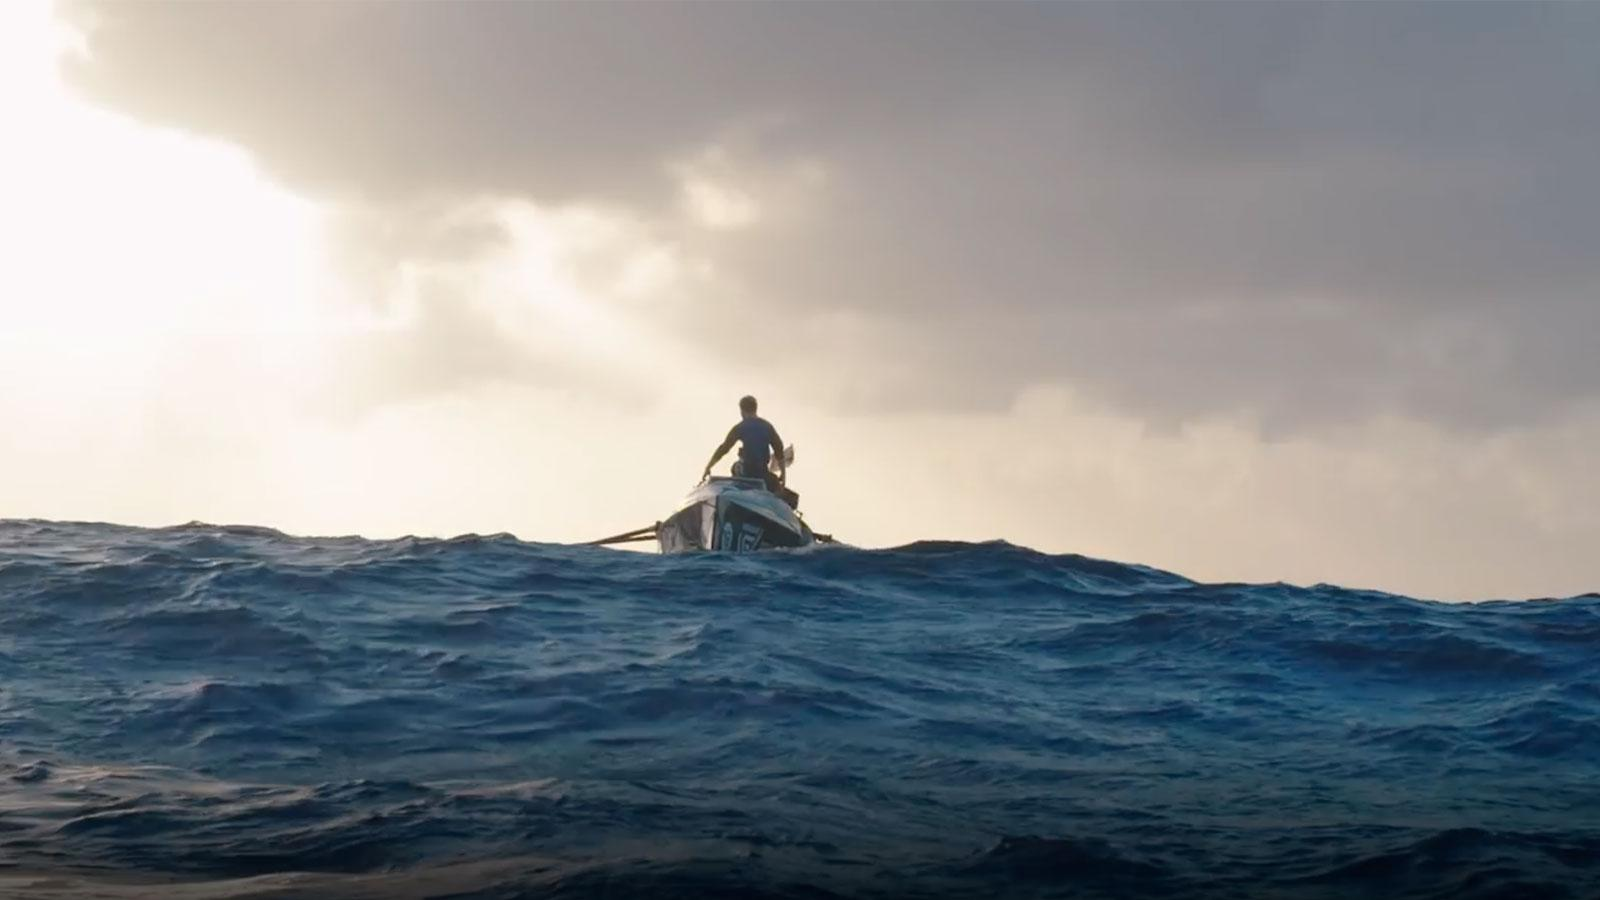 Extreme Winemaker Rowing 3,000 Miles Solo Across the Atlantic Right Now